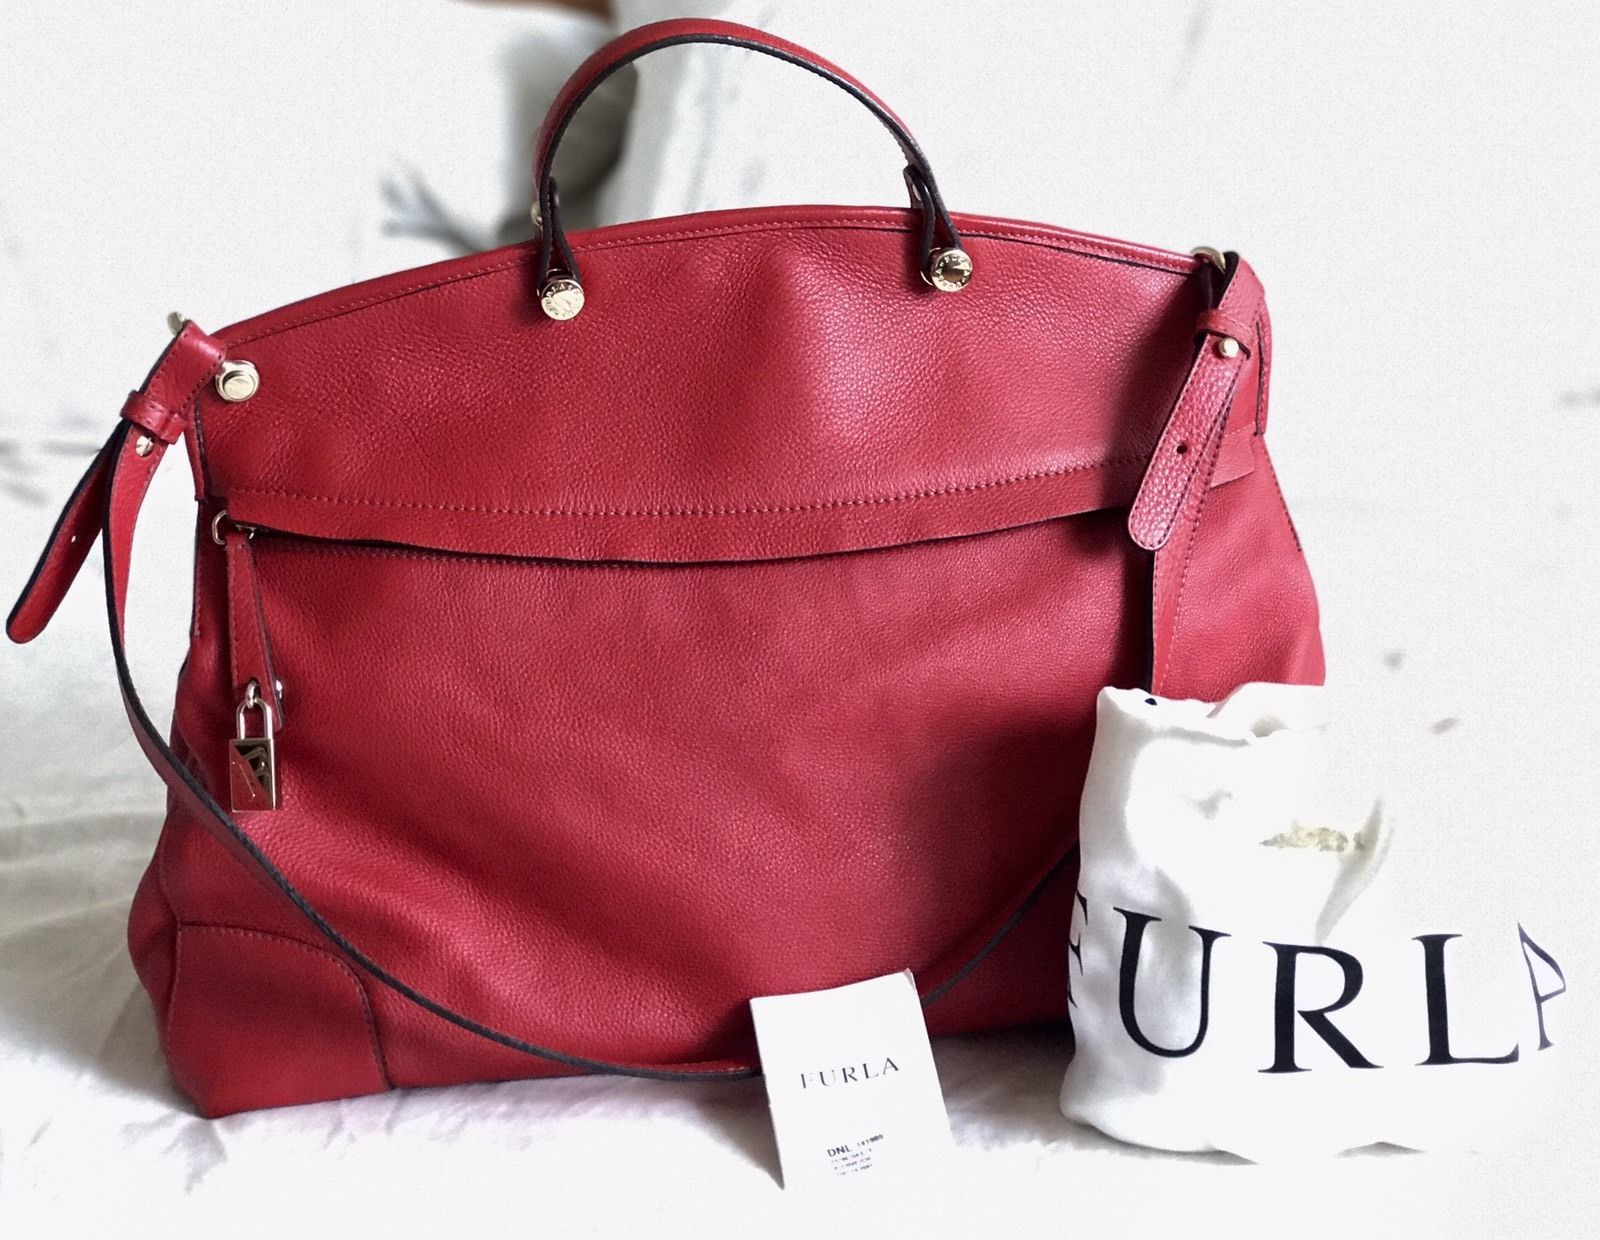 Large FURLA Red Piper Top Handle Saffiano Leather Tote Office Handbag